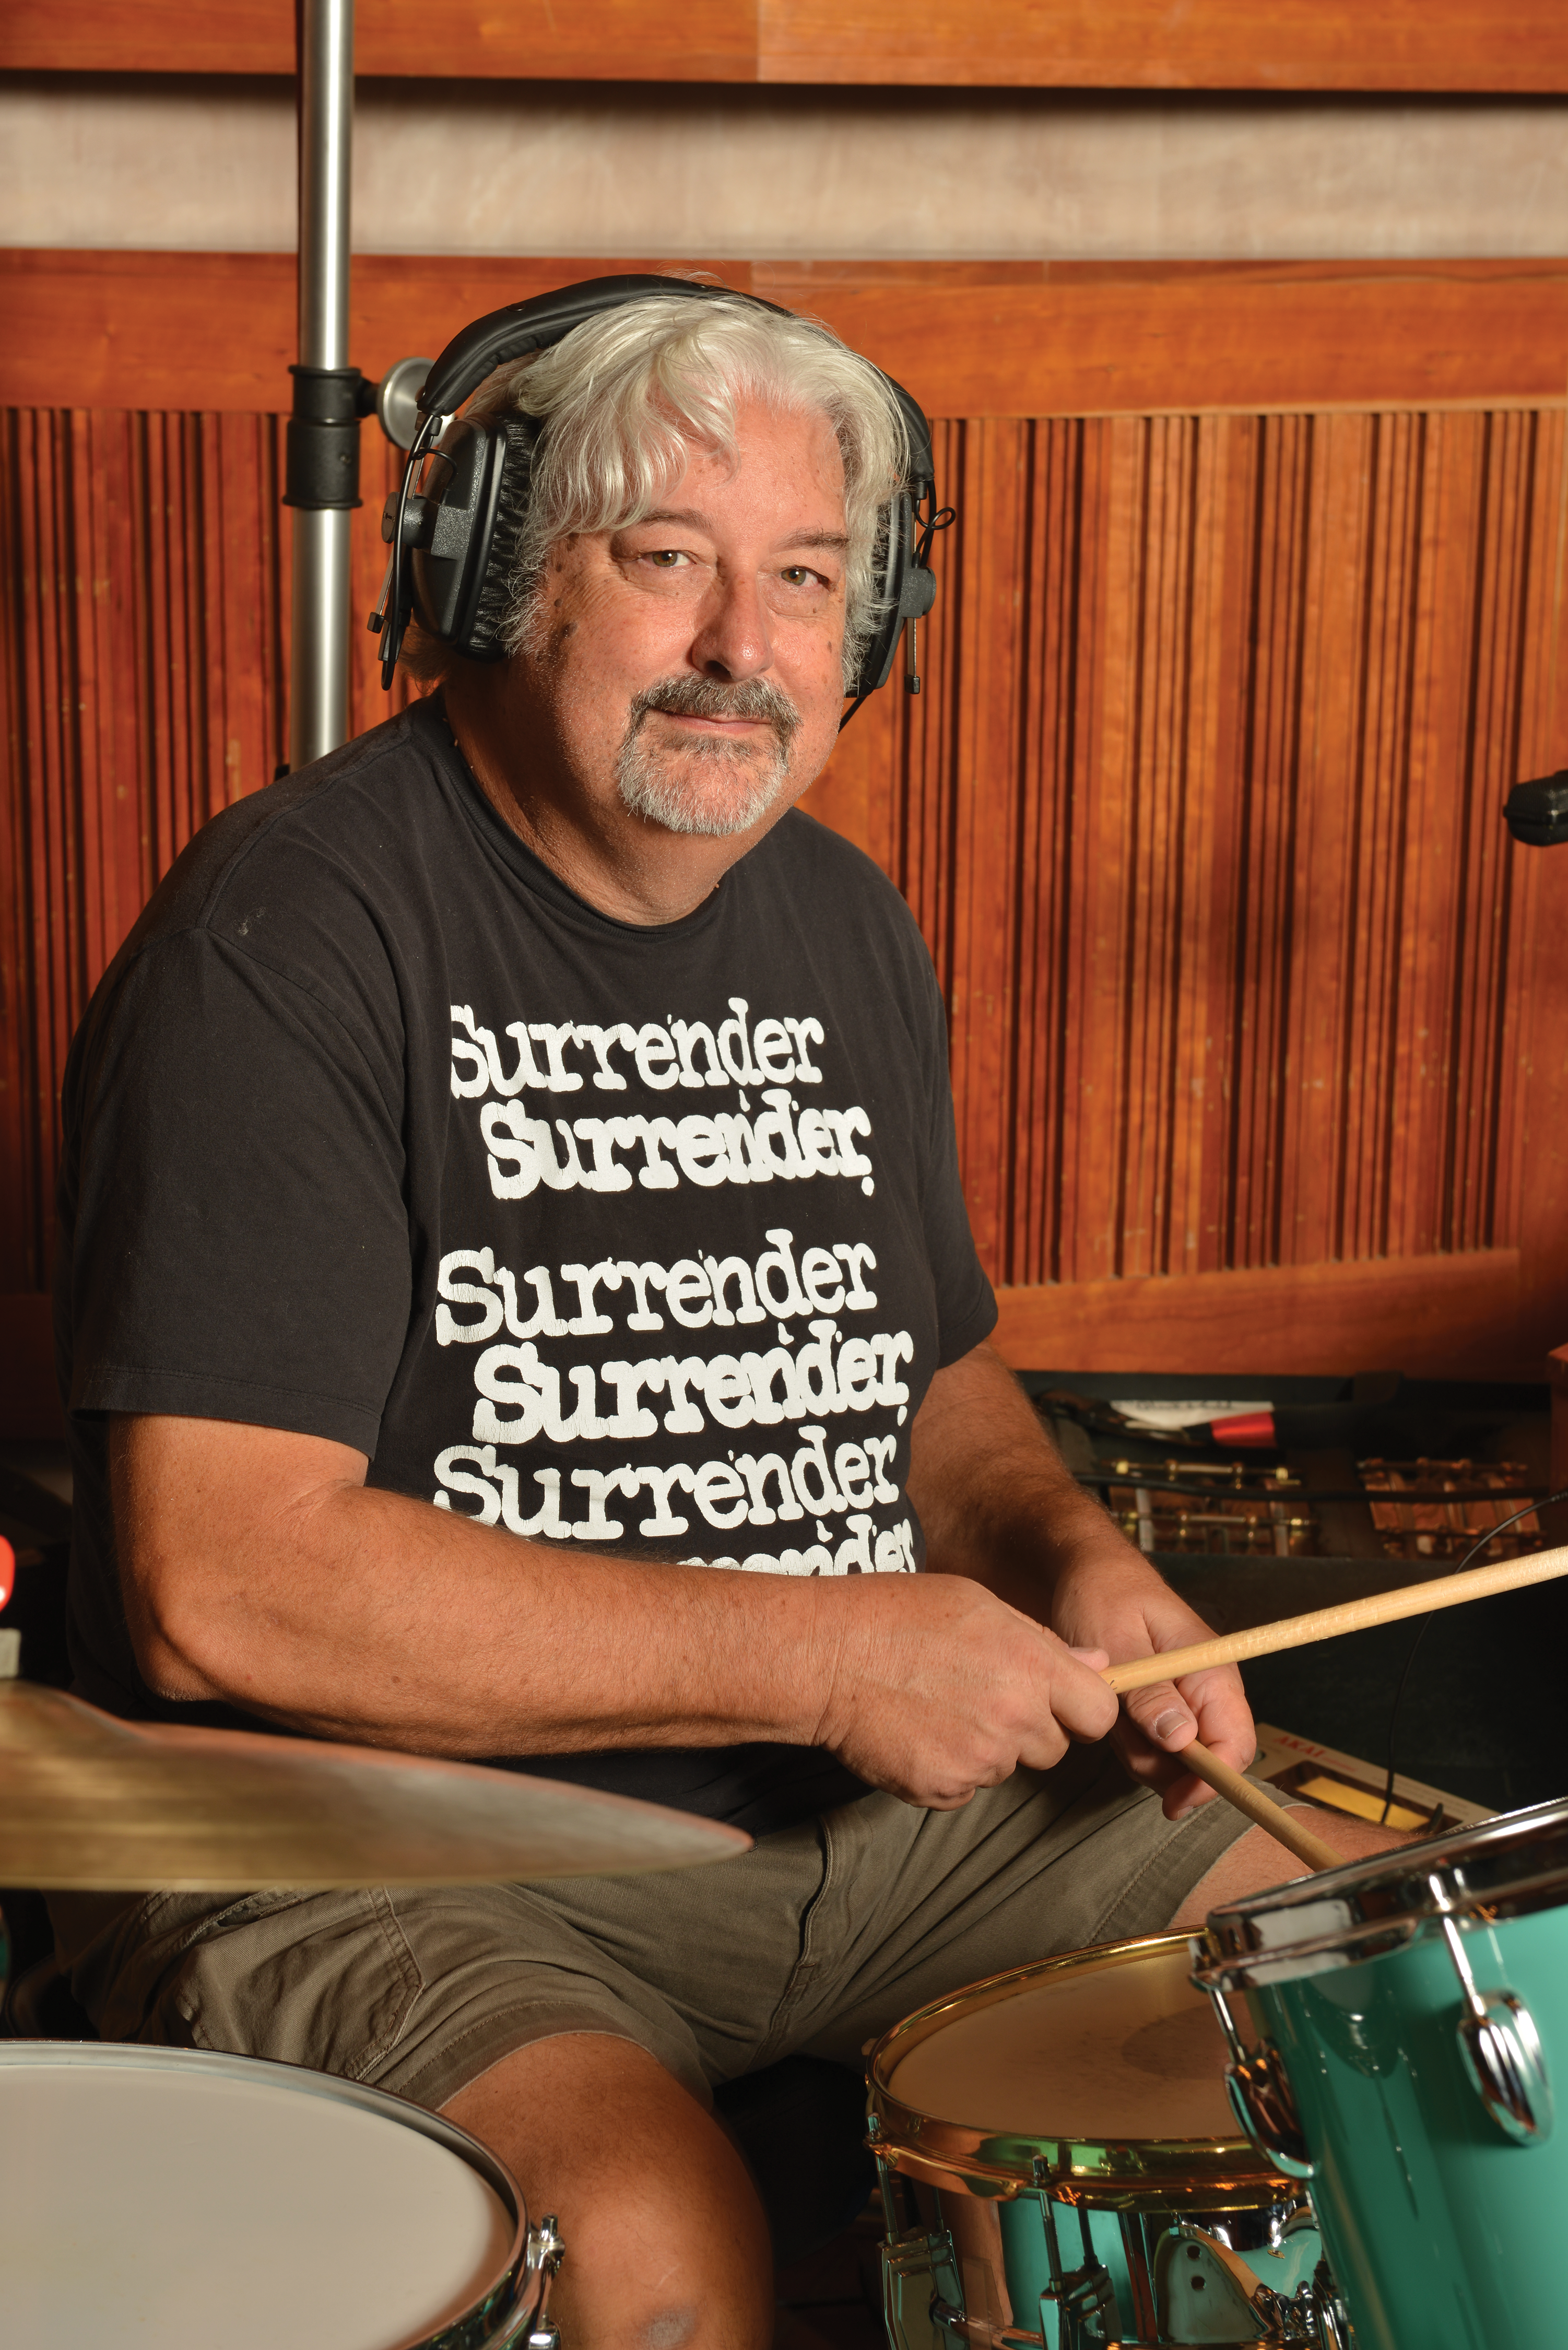 I Ve Been Particularly Influenced By Many Of The Marquee Nashville Studio Drummers